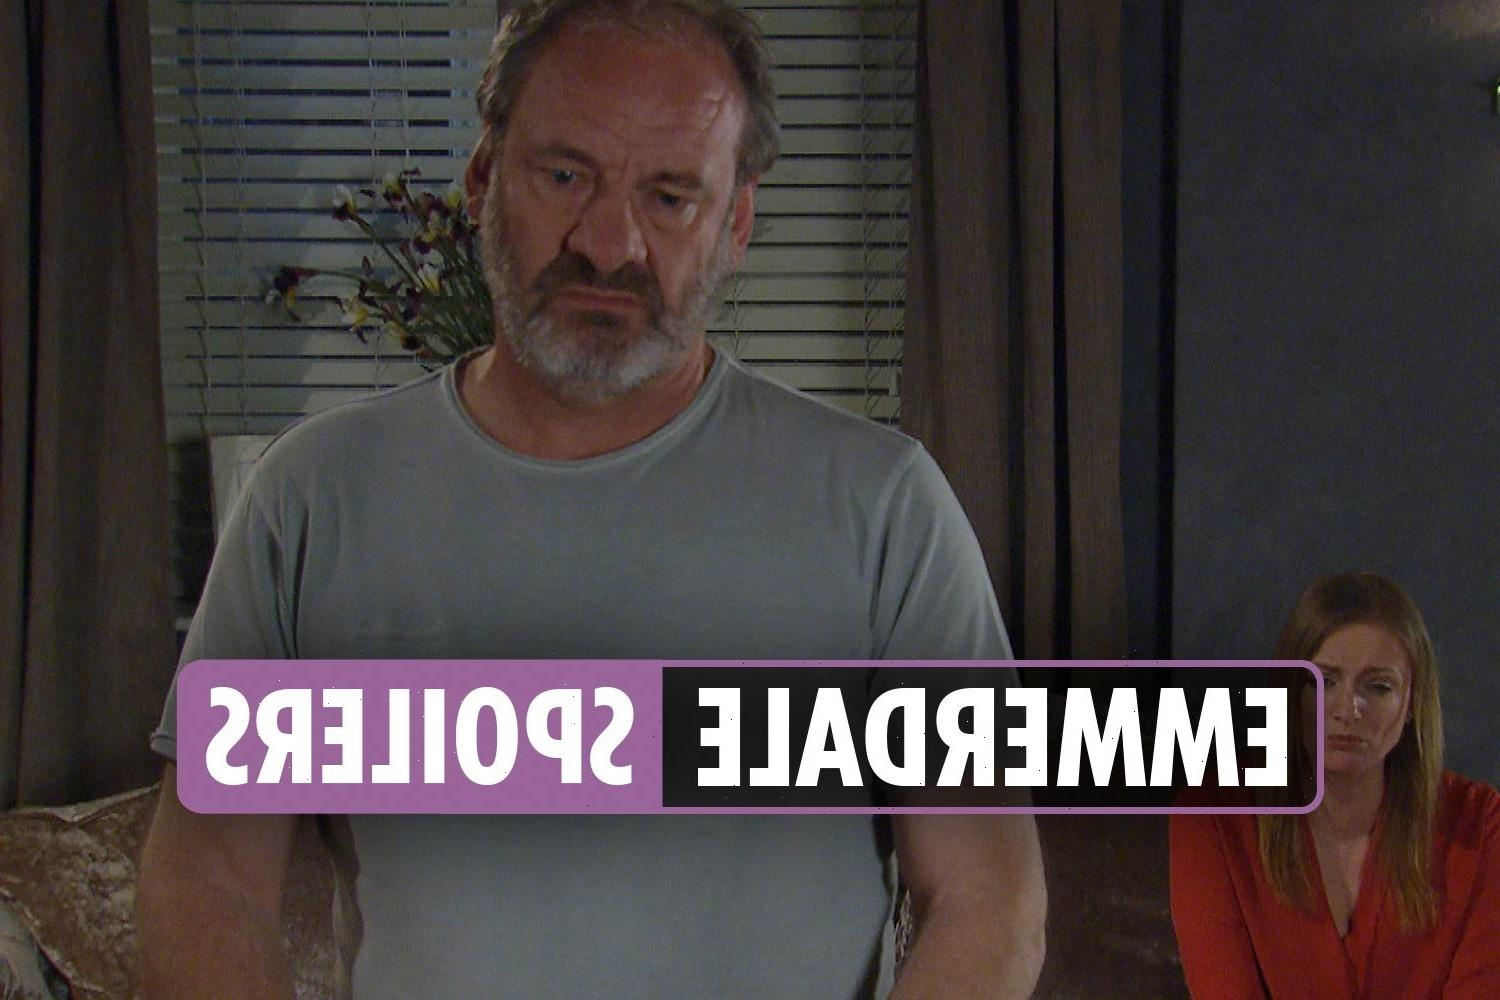 Emmerdale spoilers: Nicola tries to con husband Jimmy out of half of the business to hand it over to Charity Dingle